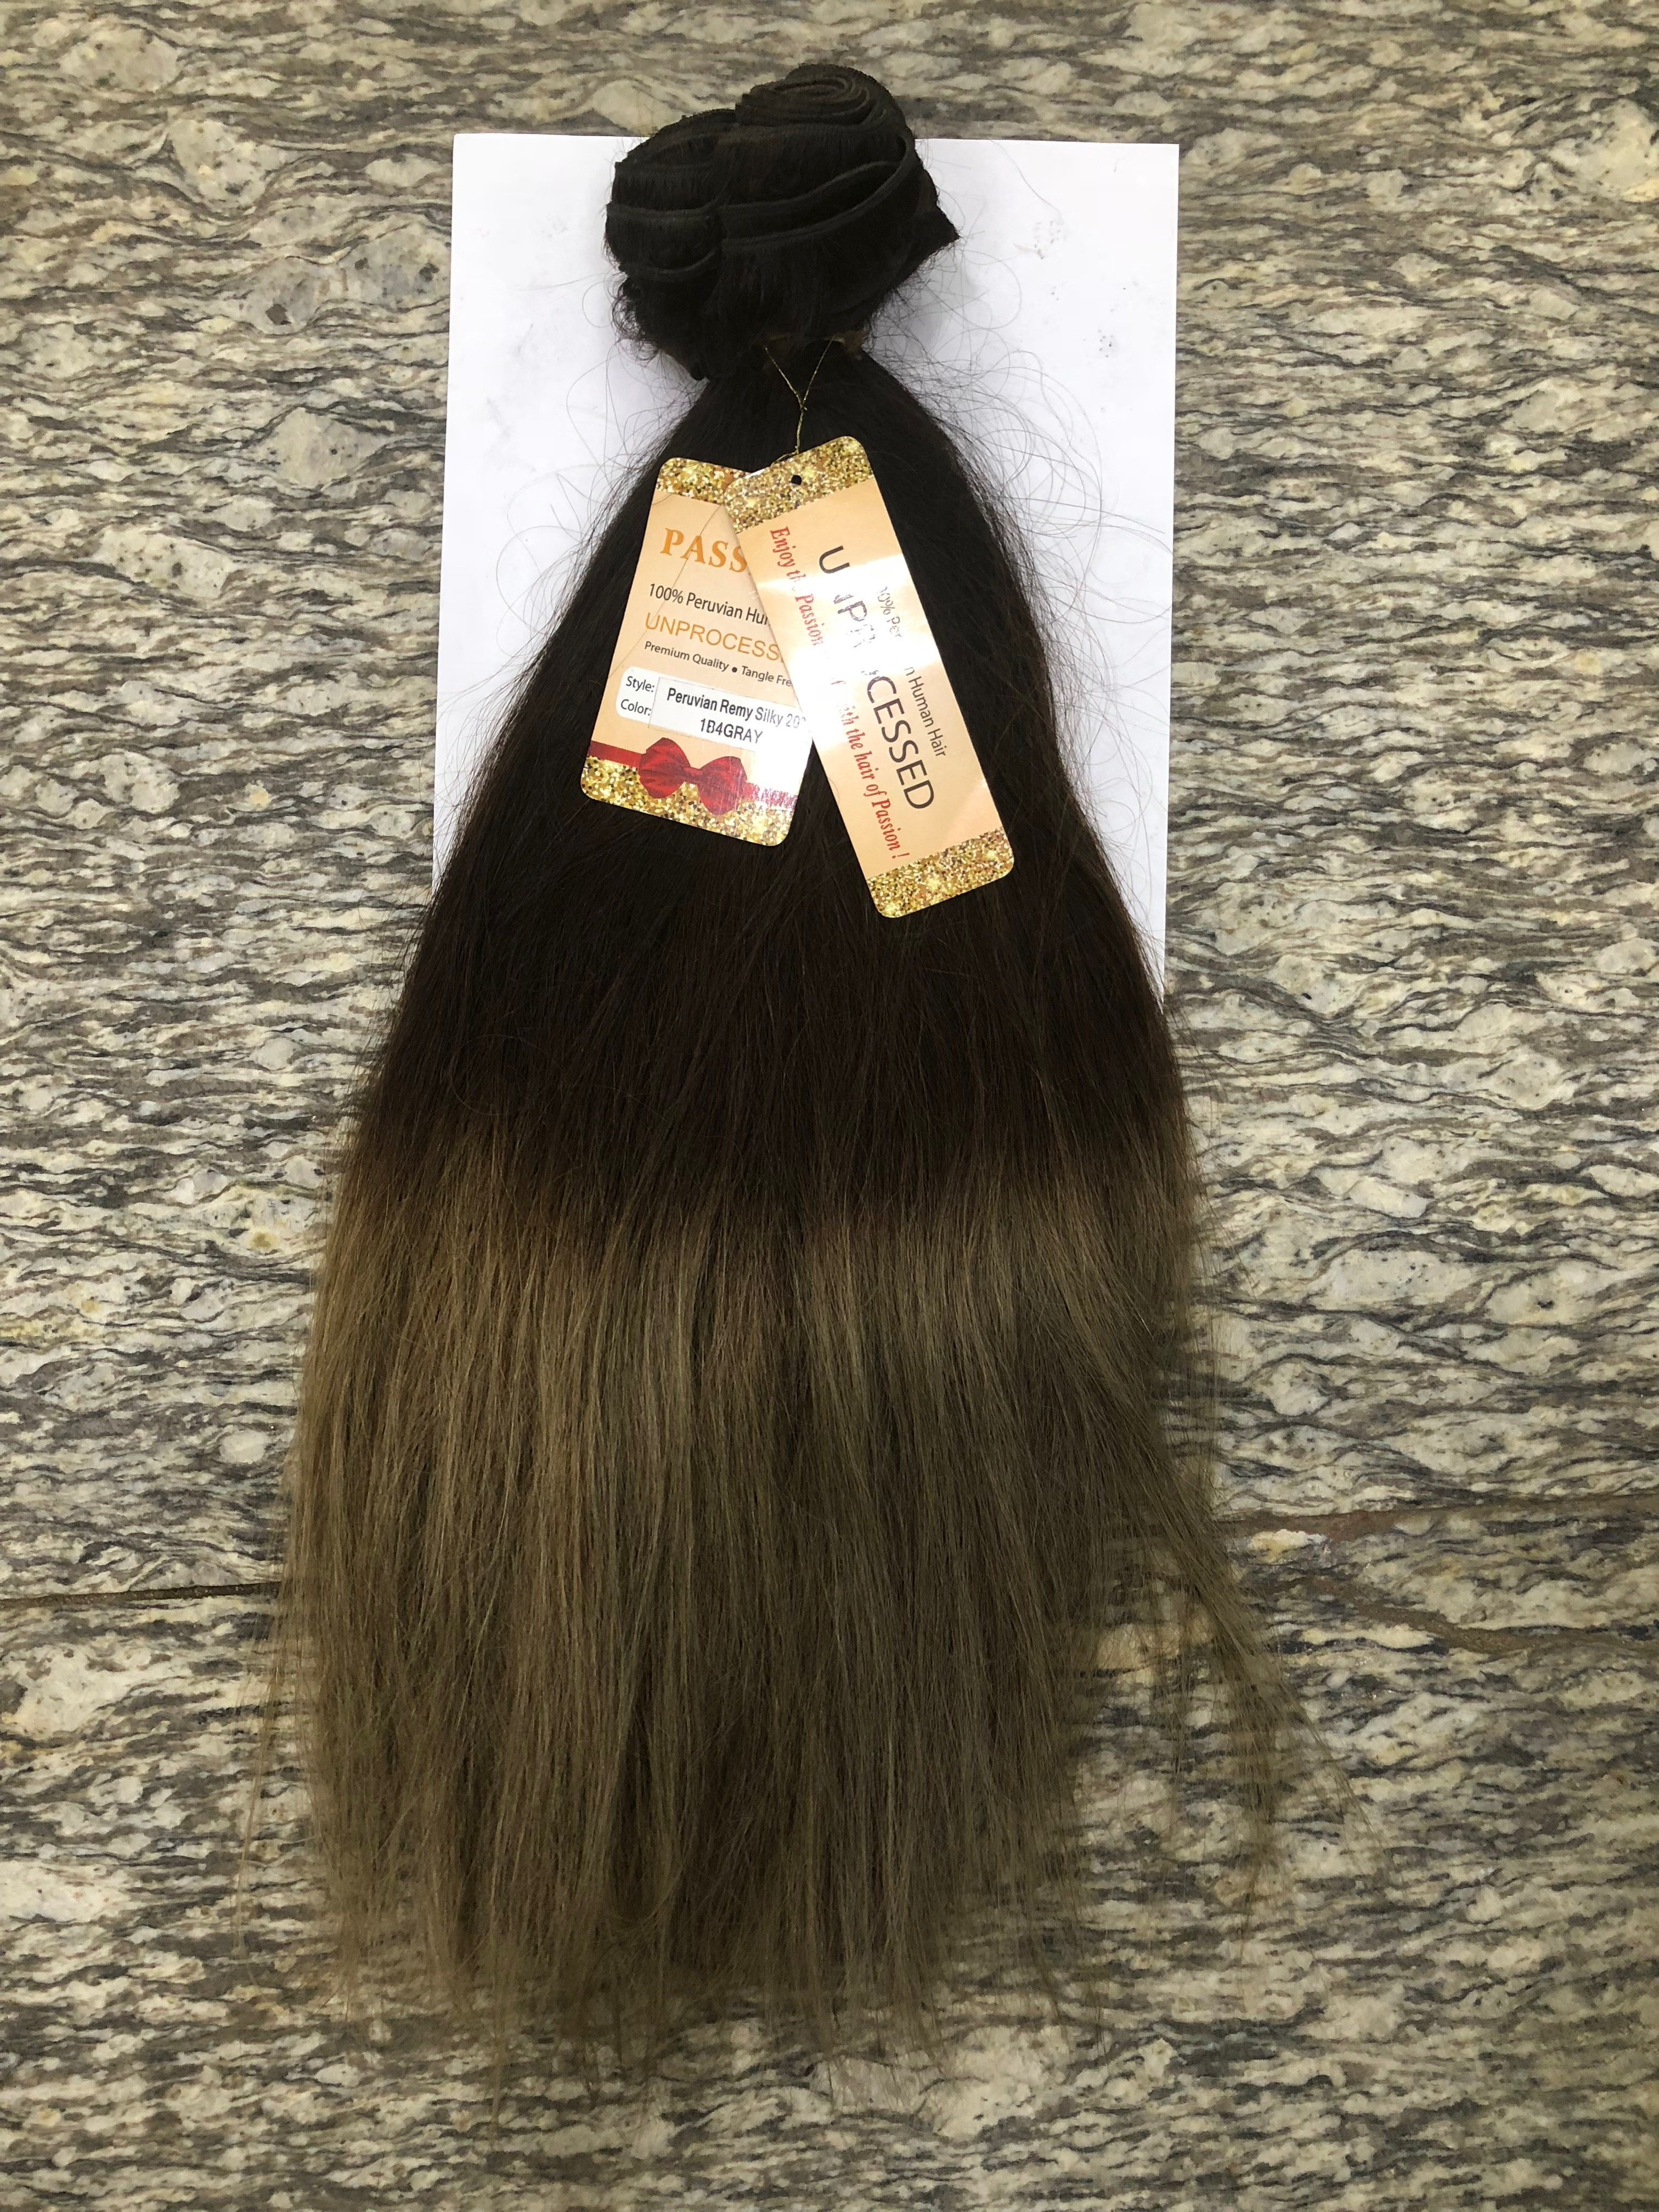 "20"" PASSION unprocessed HUMAN HAIR"